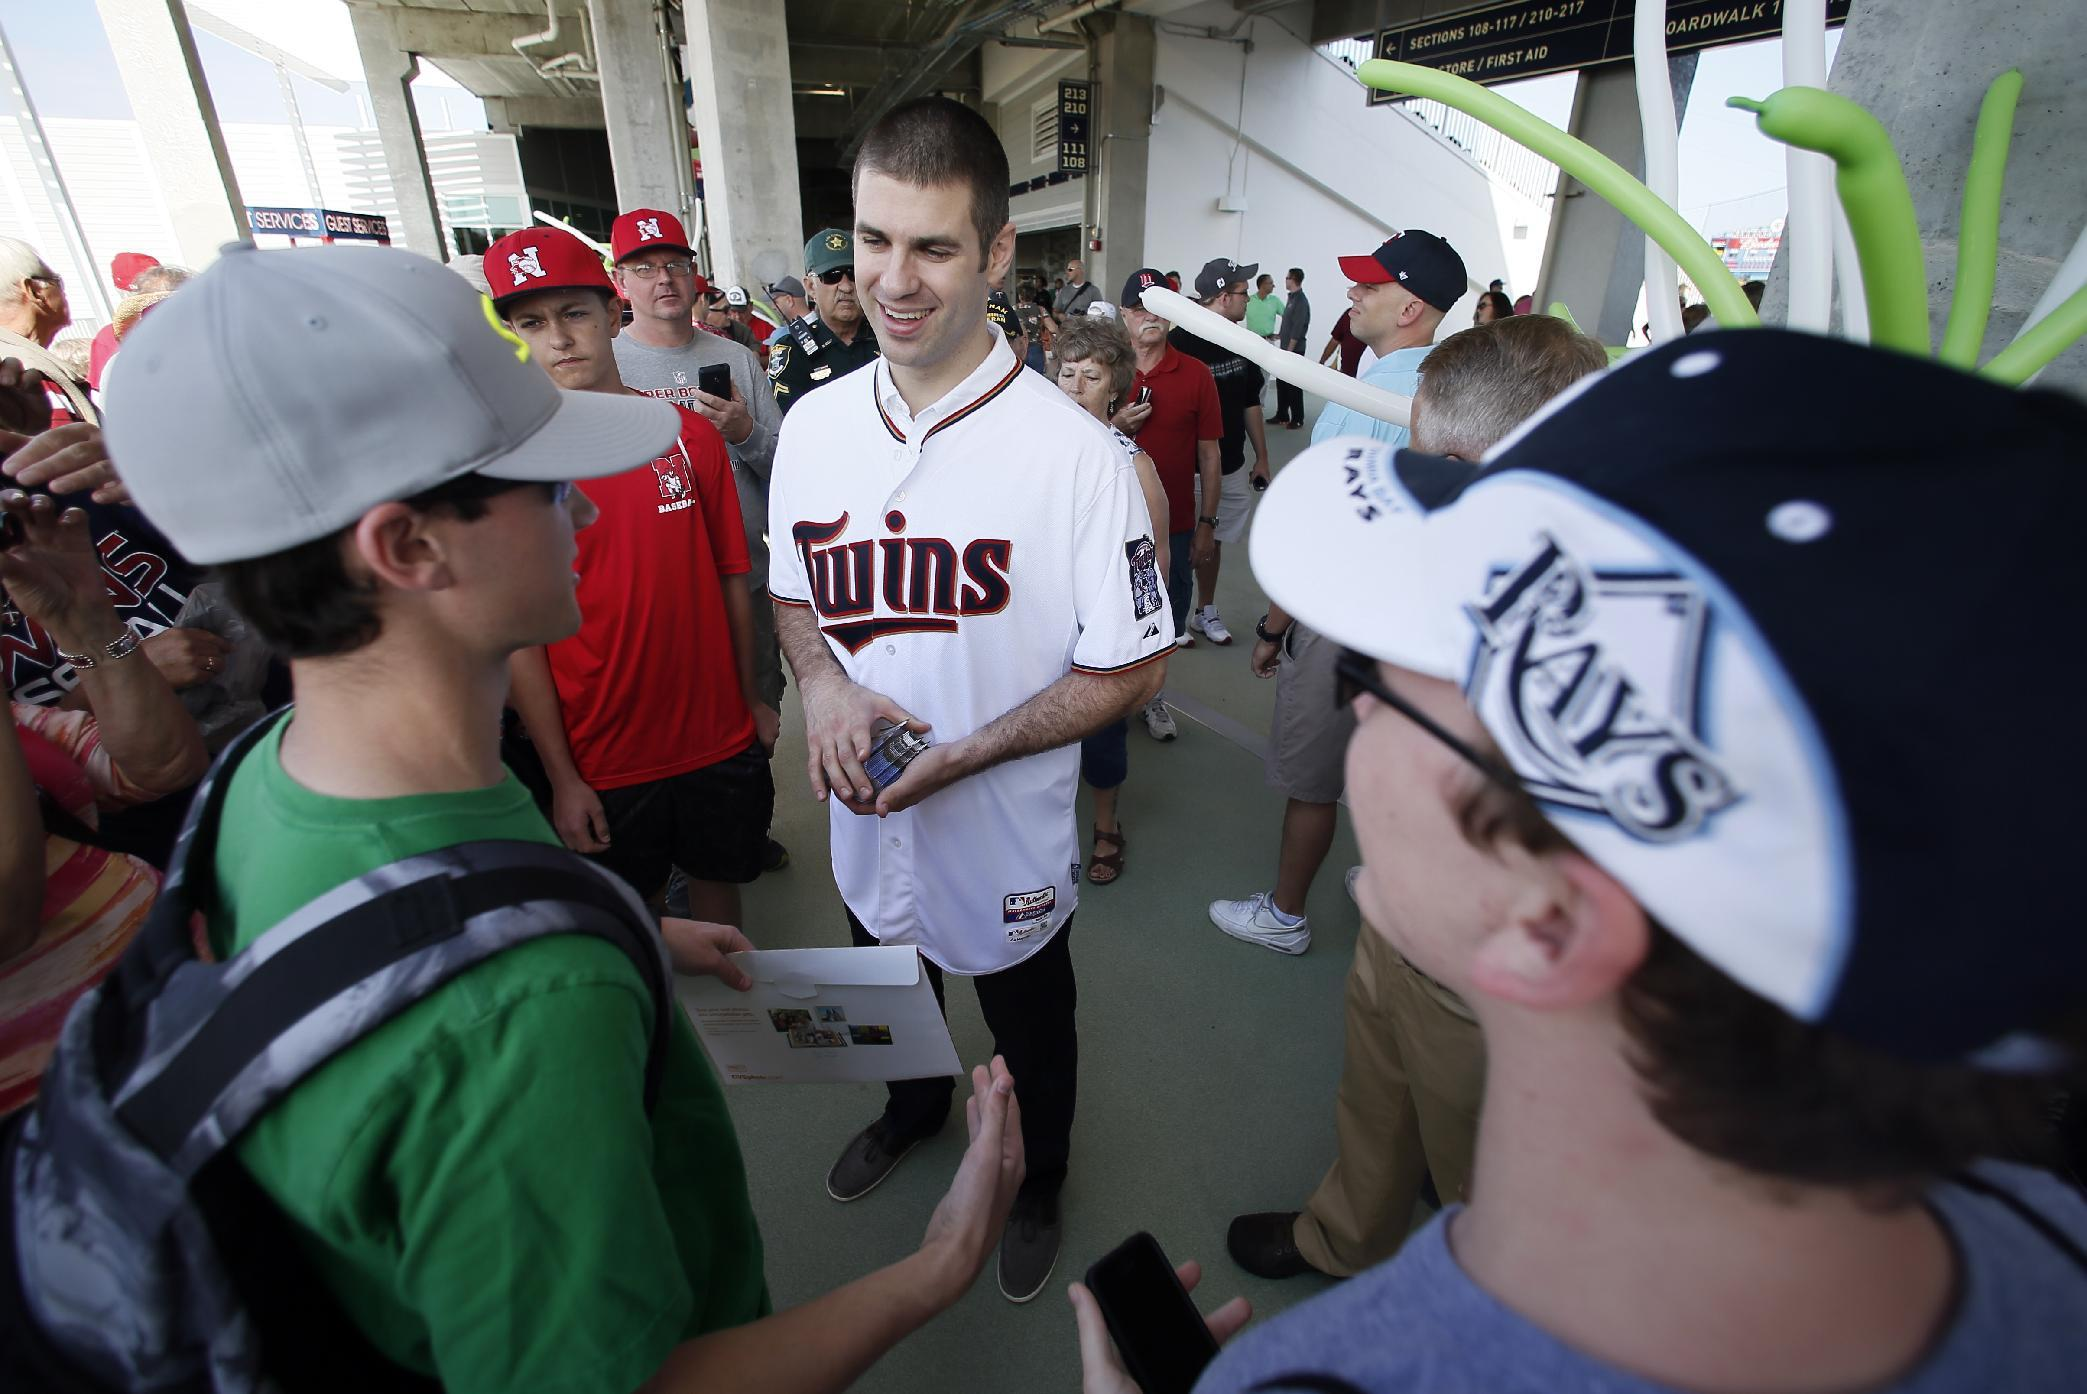 Hometown boys Molitor, Mauer trying to turn Twins around